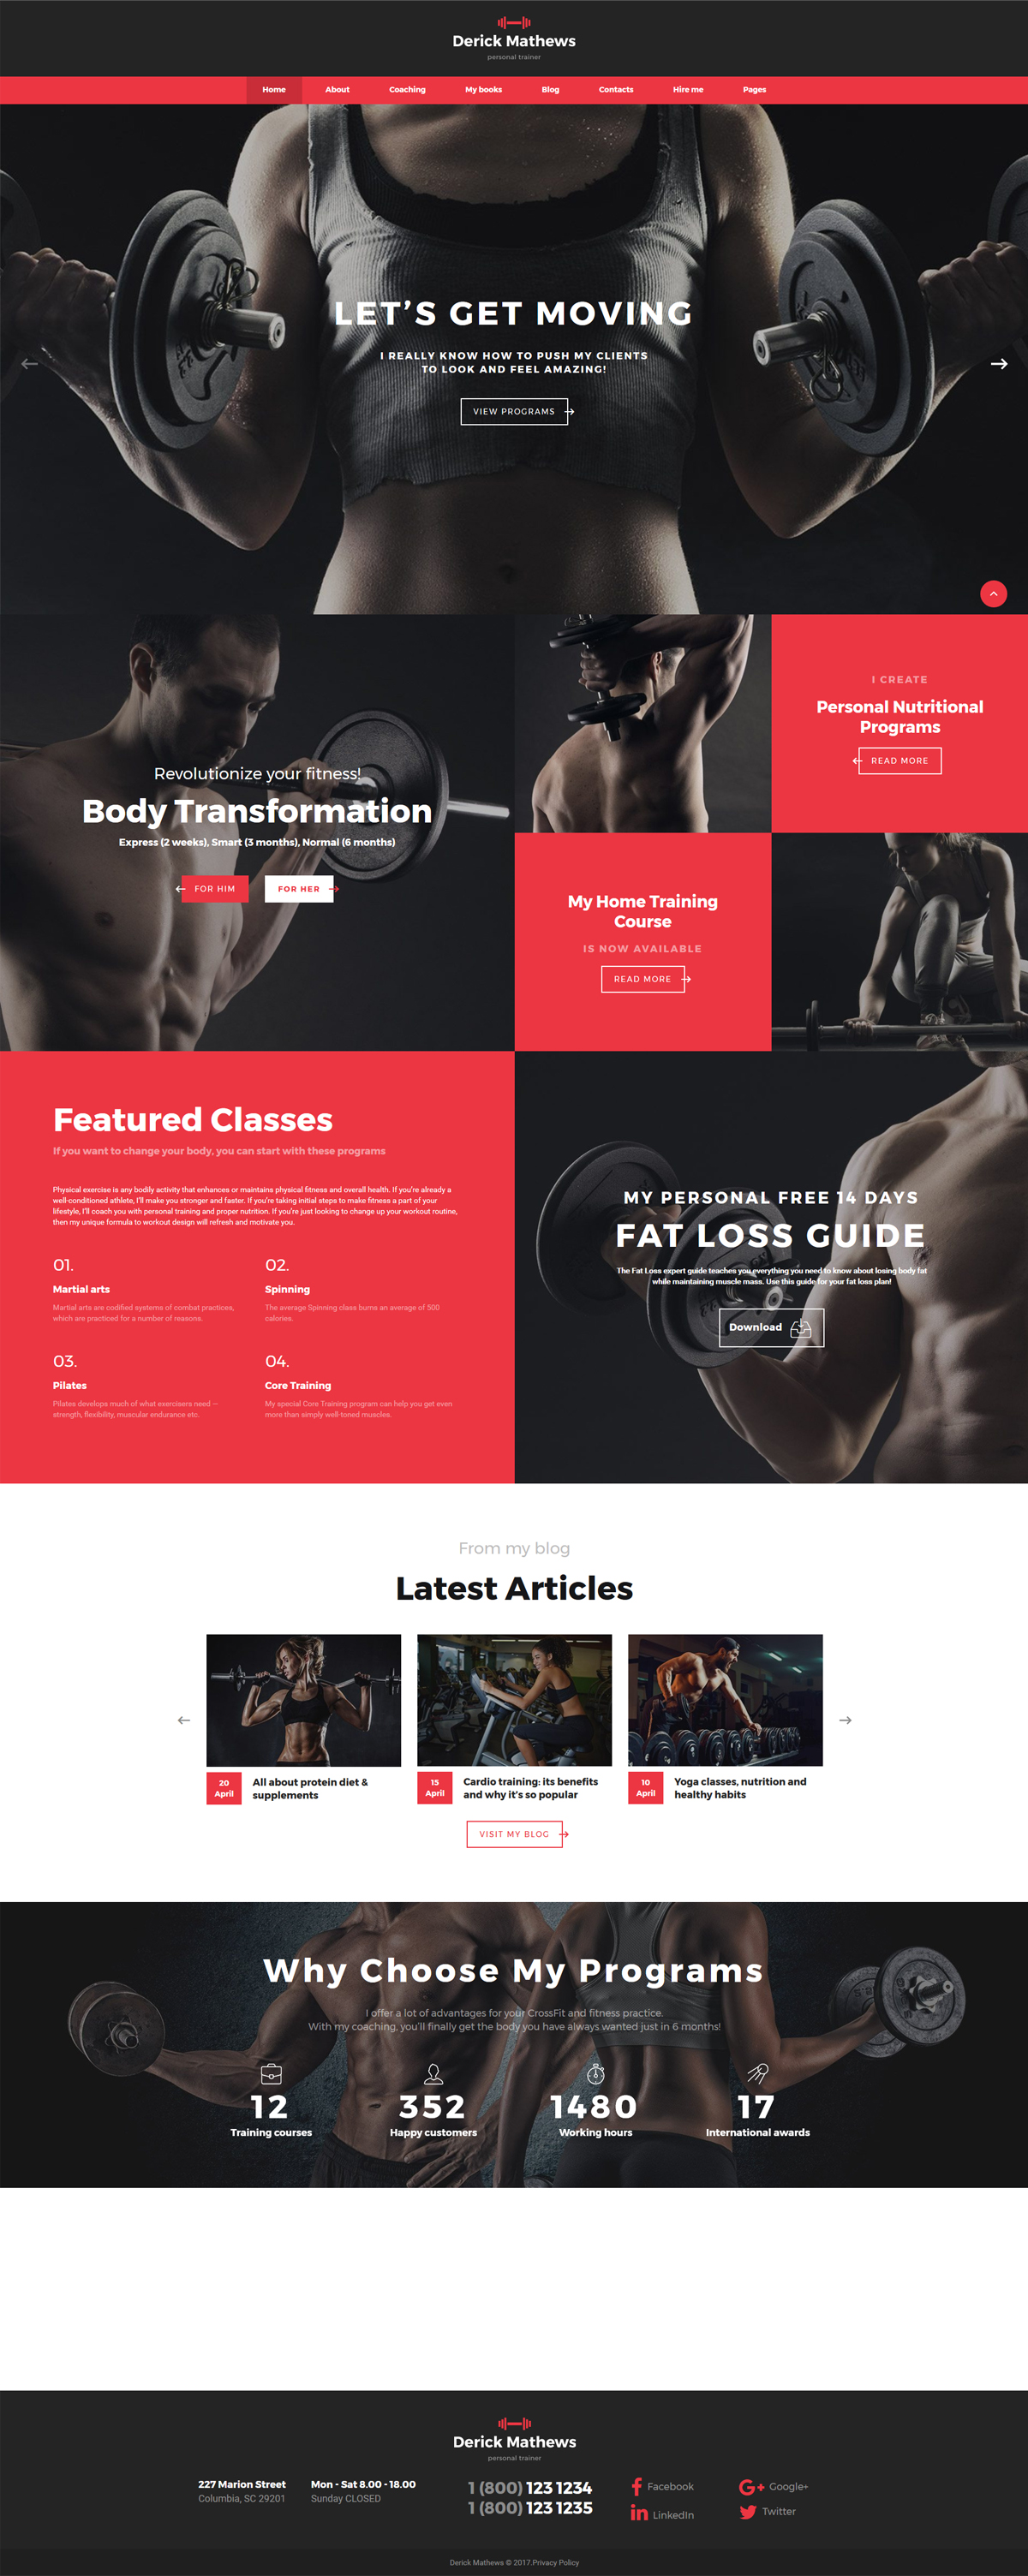 Derick Mathews - Personal Trainer Multipage Website Template - screenshot